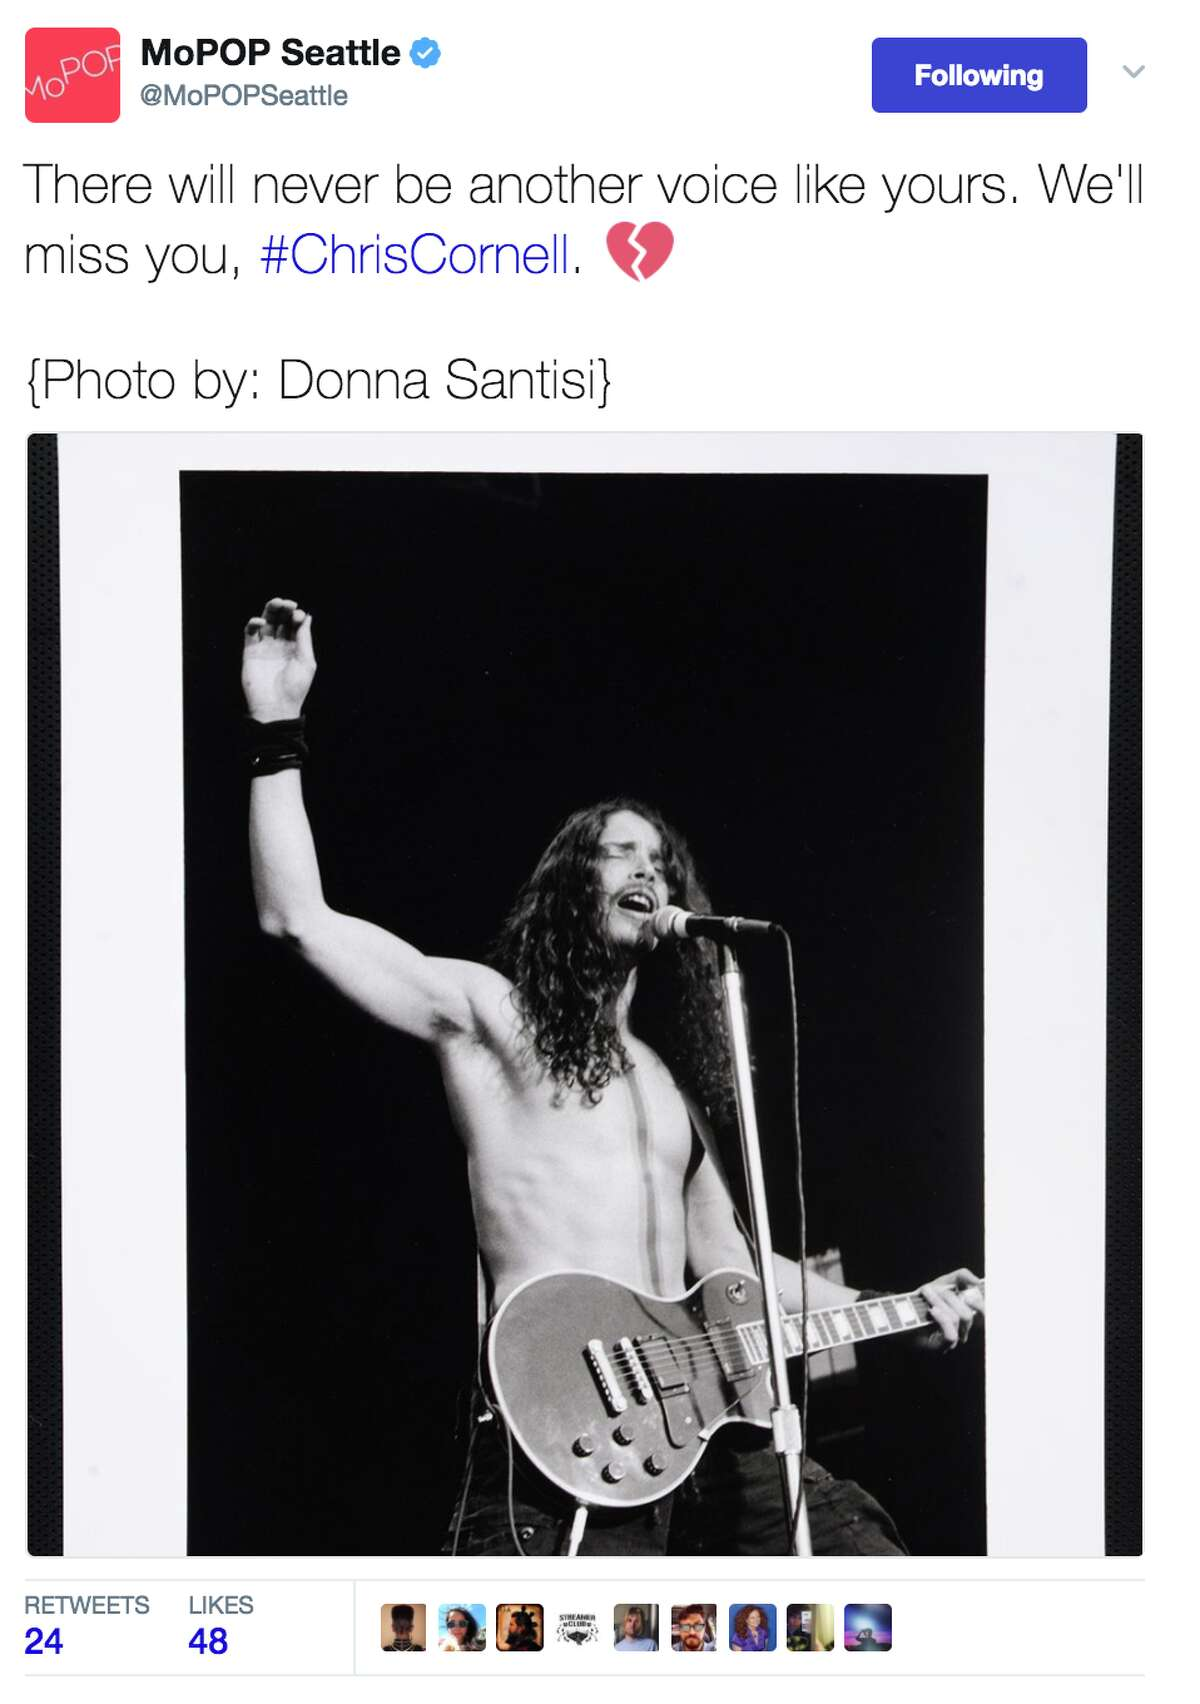 Local reaction to the news of the death of Chris Cornell, Soundgarden frontman and Seattle grunge icon.